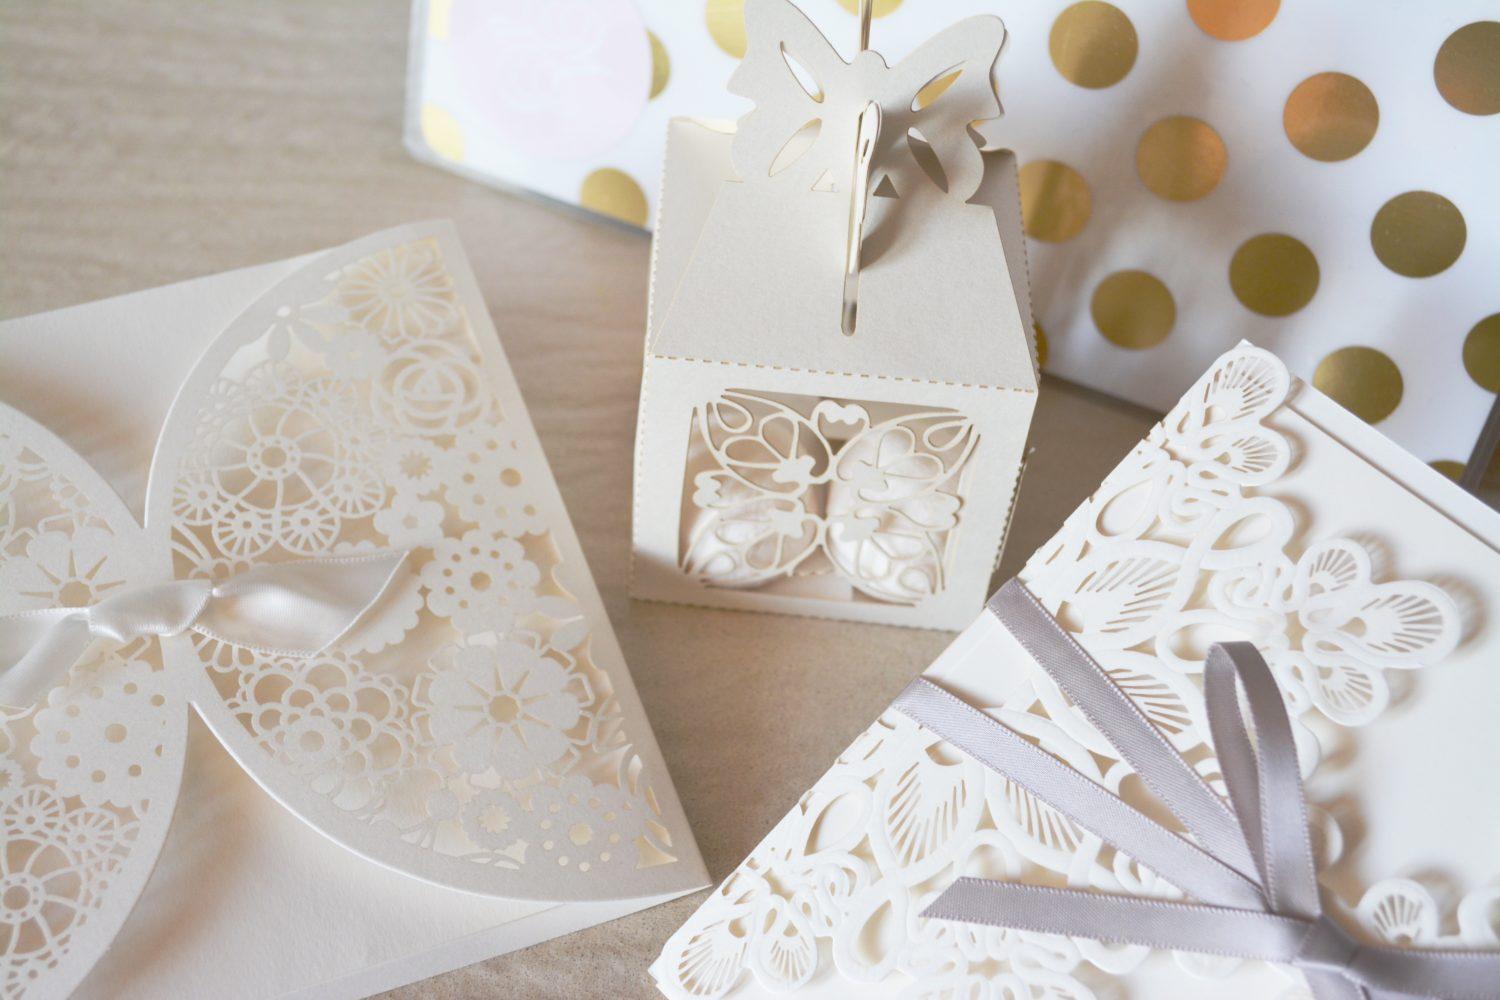 The Dos and Don'ts of Wedding Invitations